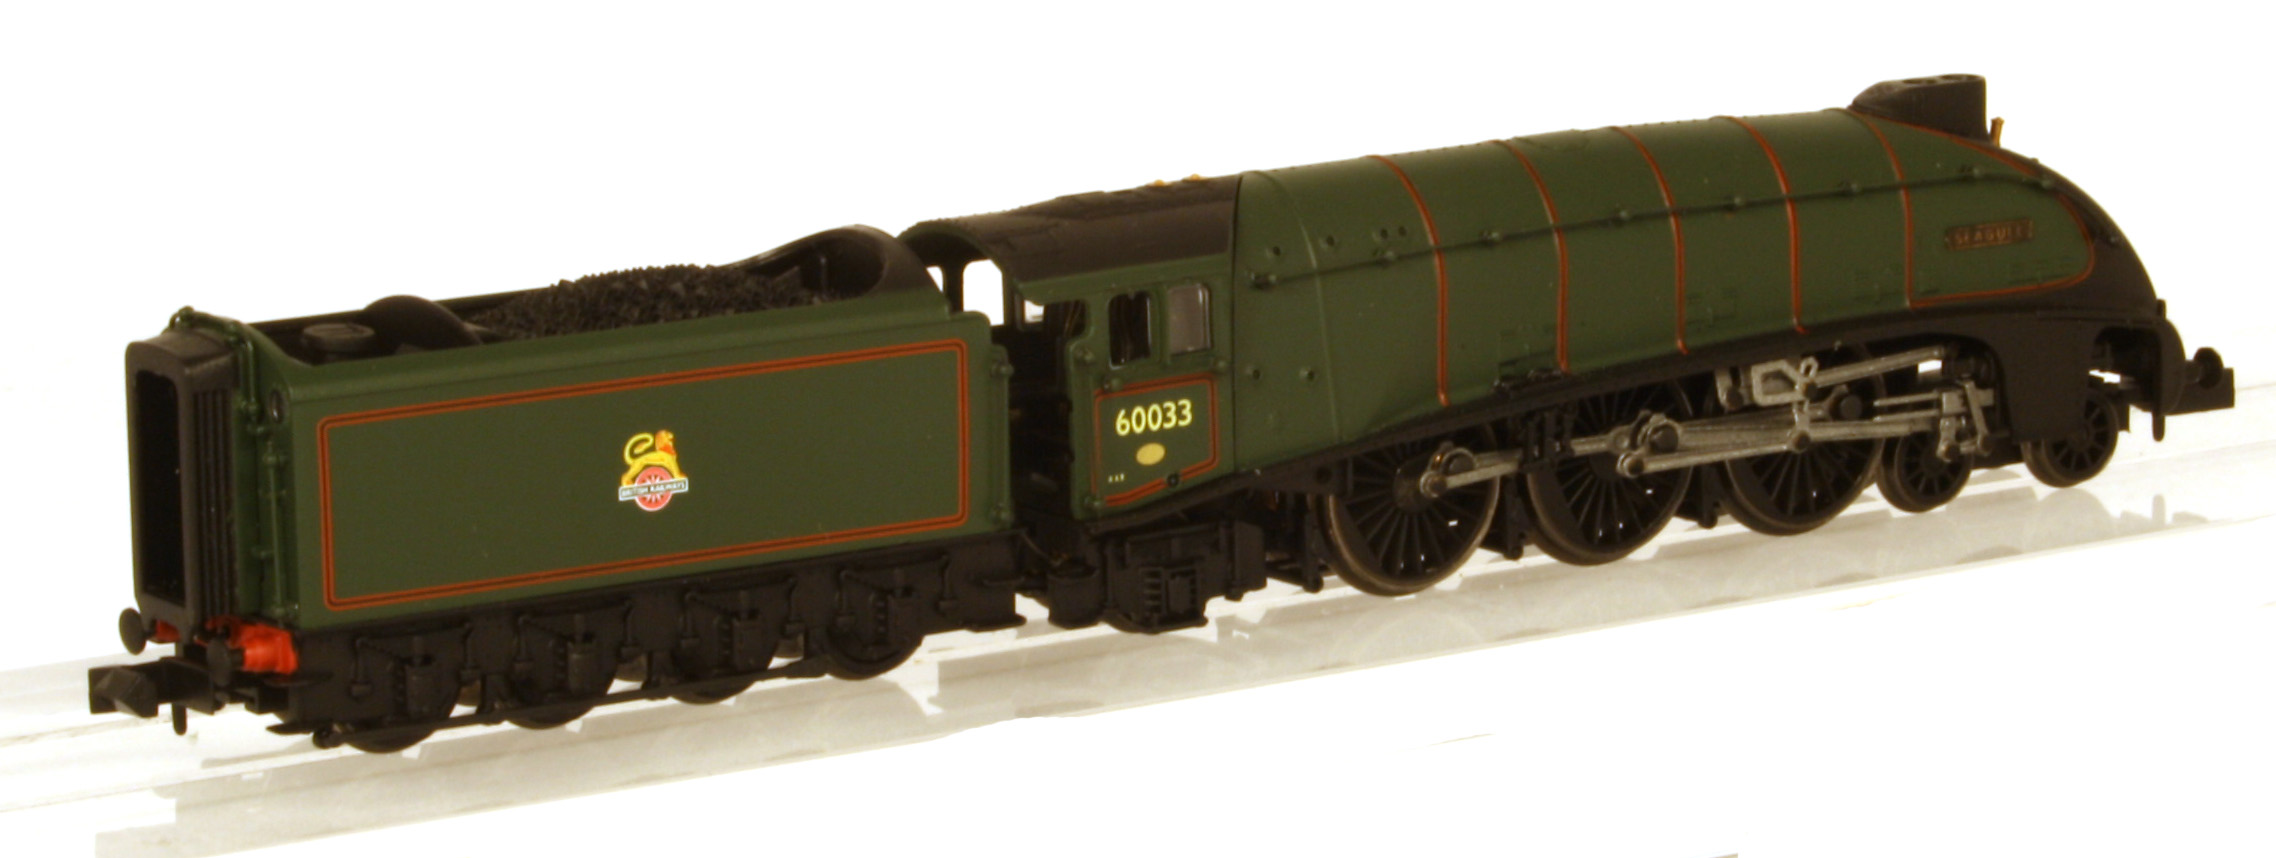 "2S-008-007D Dapol A4 Steam Locomotive number 60033 named ""Seagull"" in BR Green livery with early emblem"